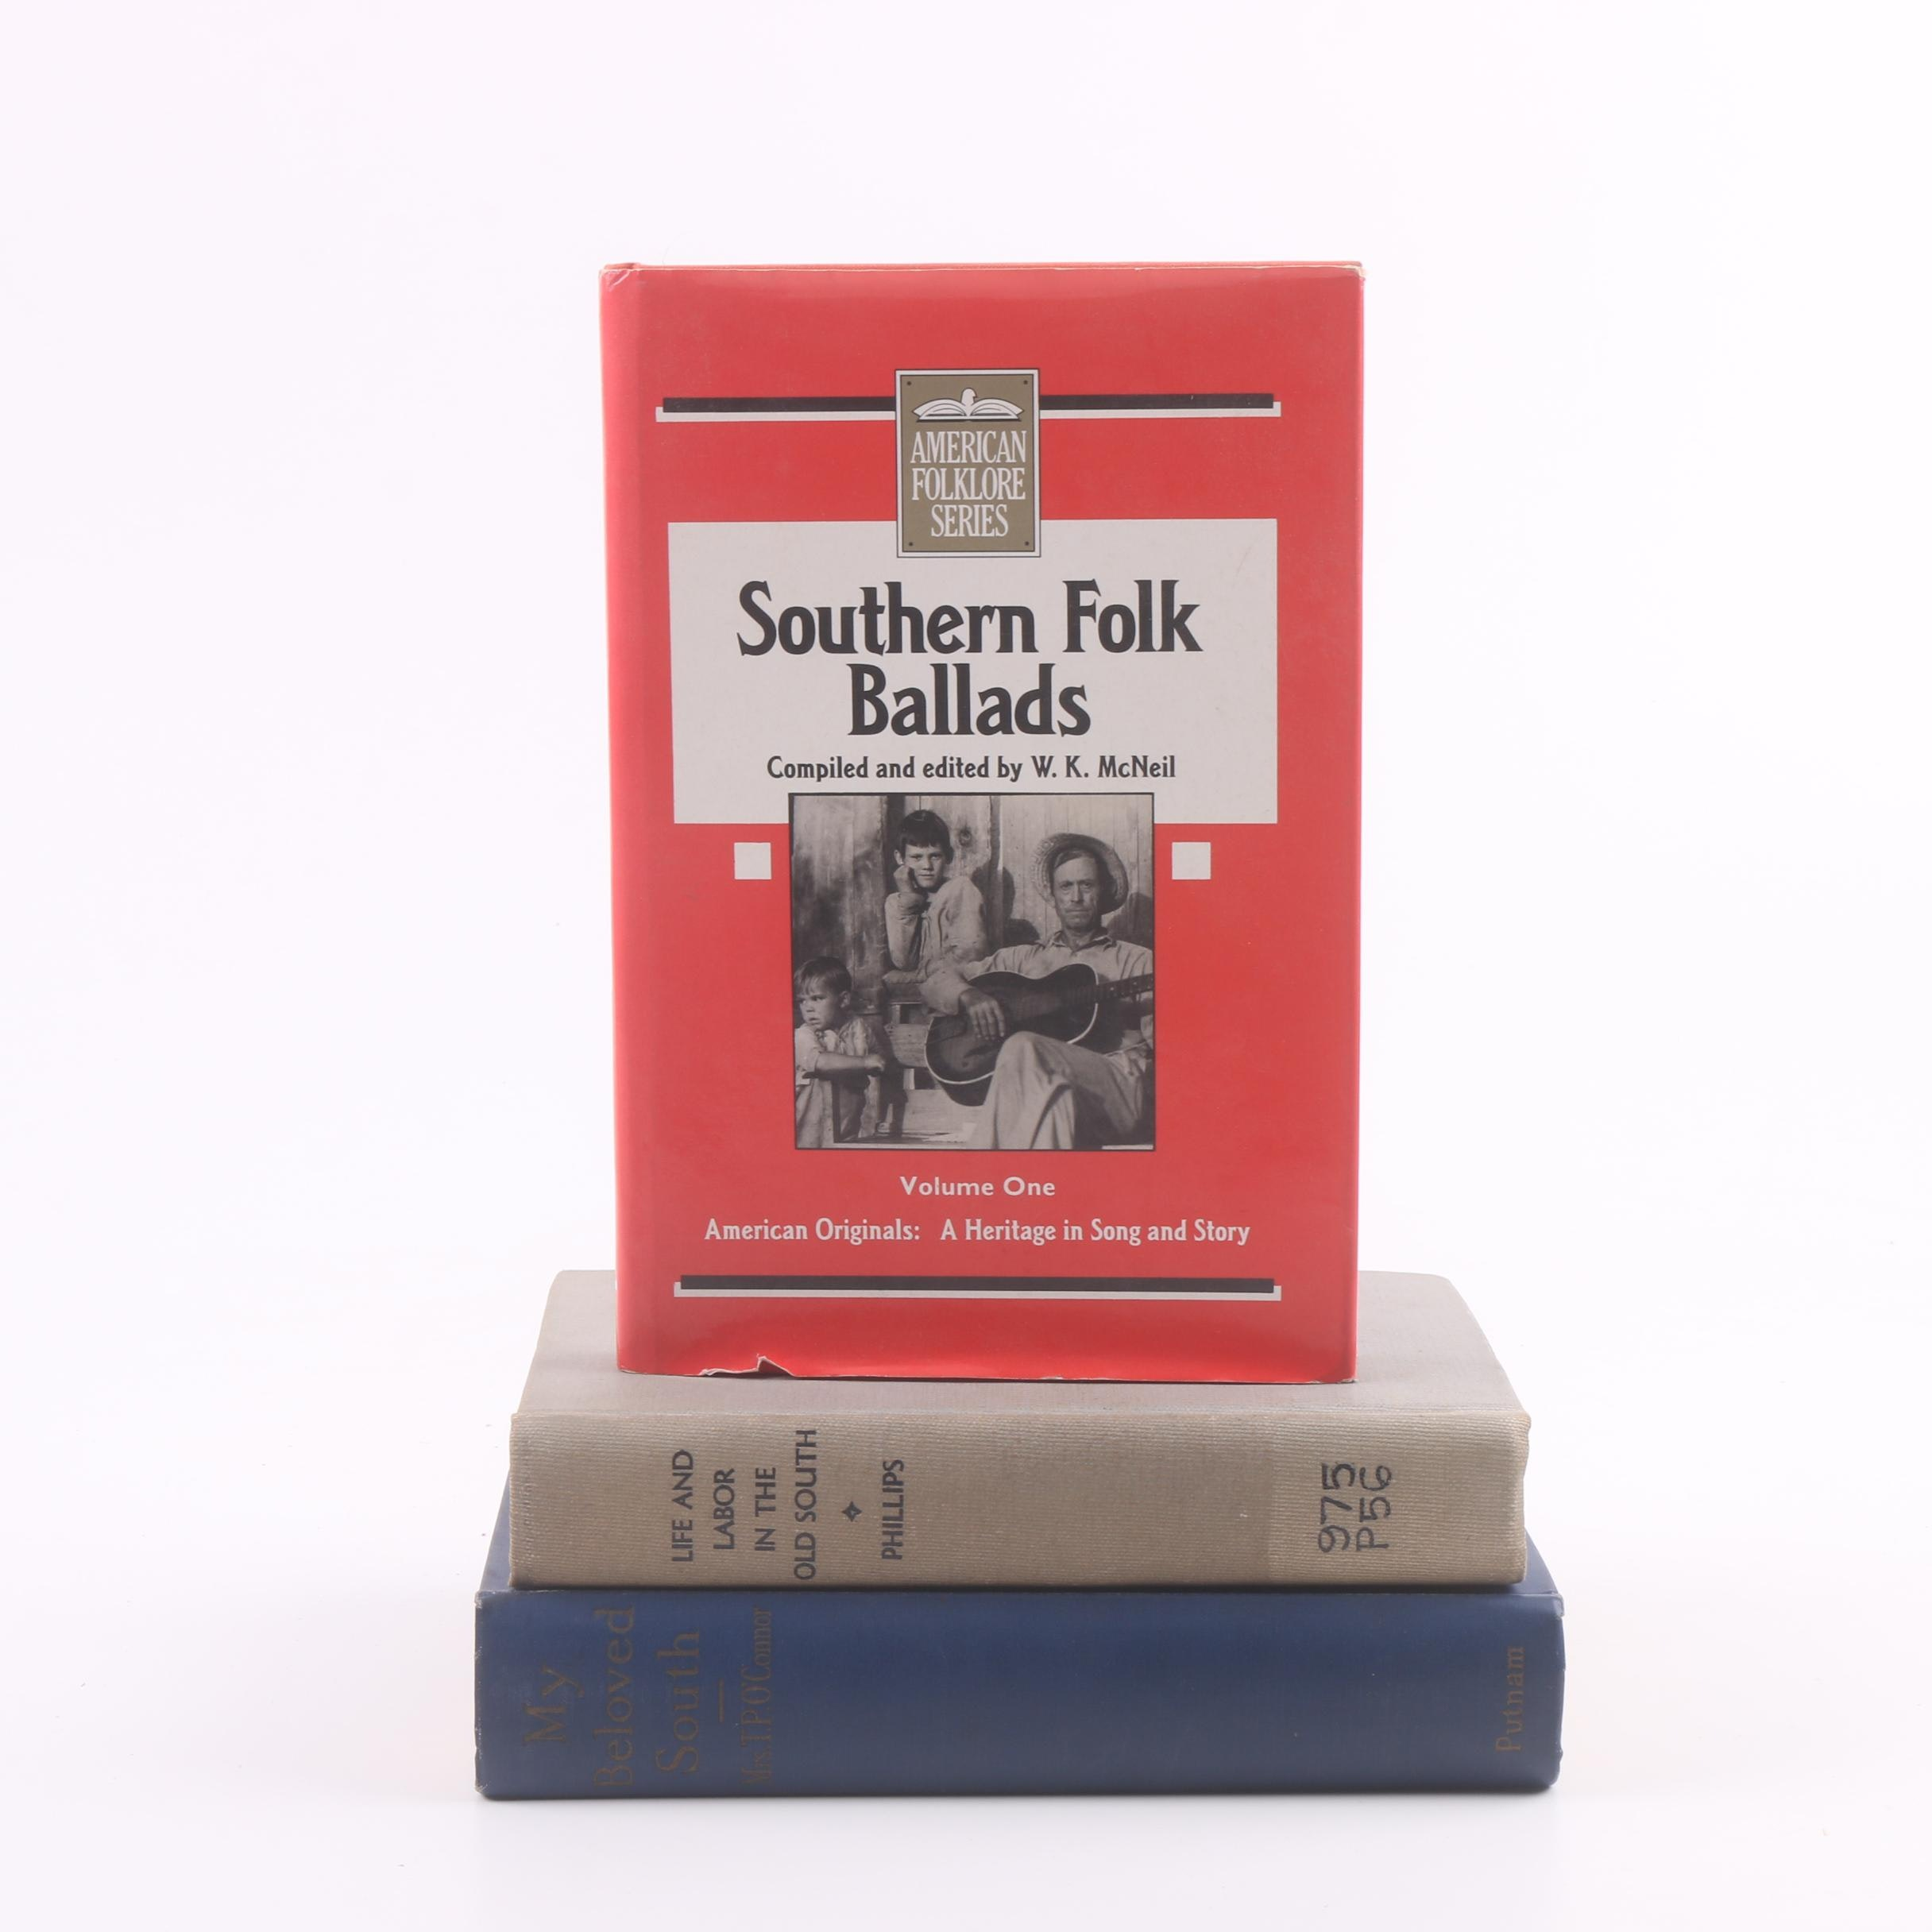 Books on Old Southern Society and Songs